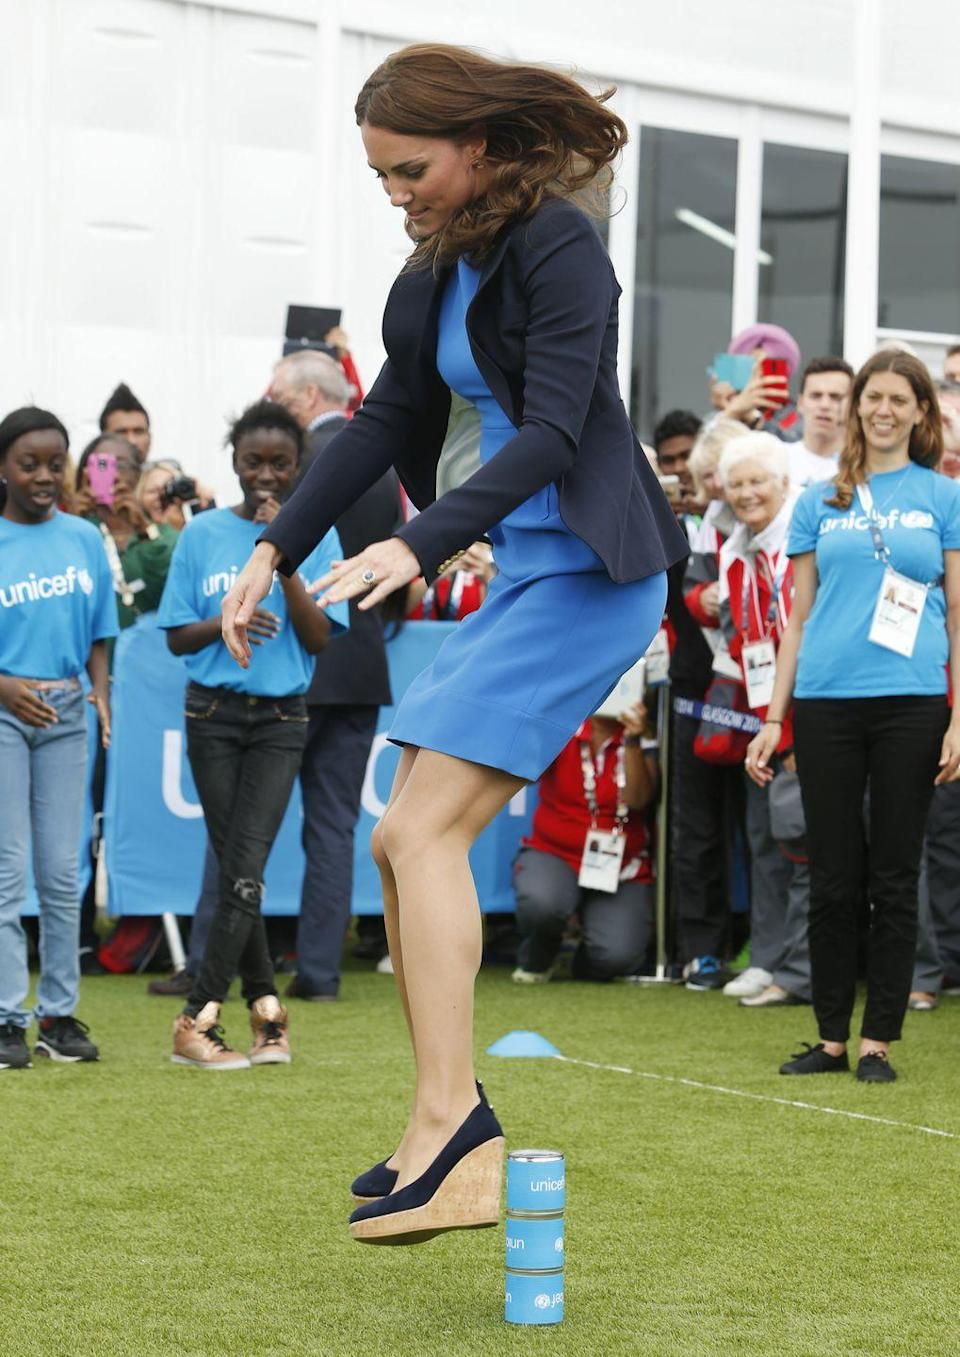 <p>While not exactly dressed for jumping, the Duchess looked quite chic playing Three Tins, a traditional South African game. Kate joined in the fun at the Commonwealth Games Village in Glasgow, Scotland. </p>